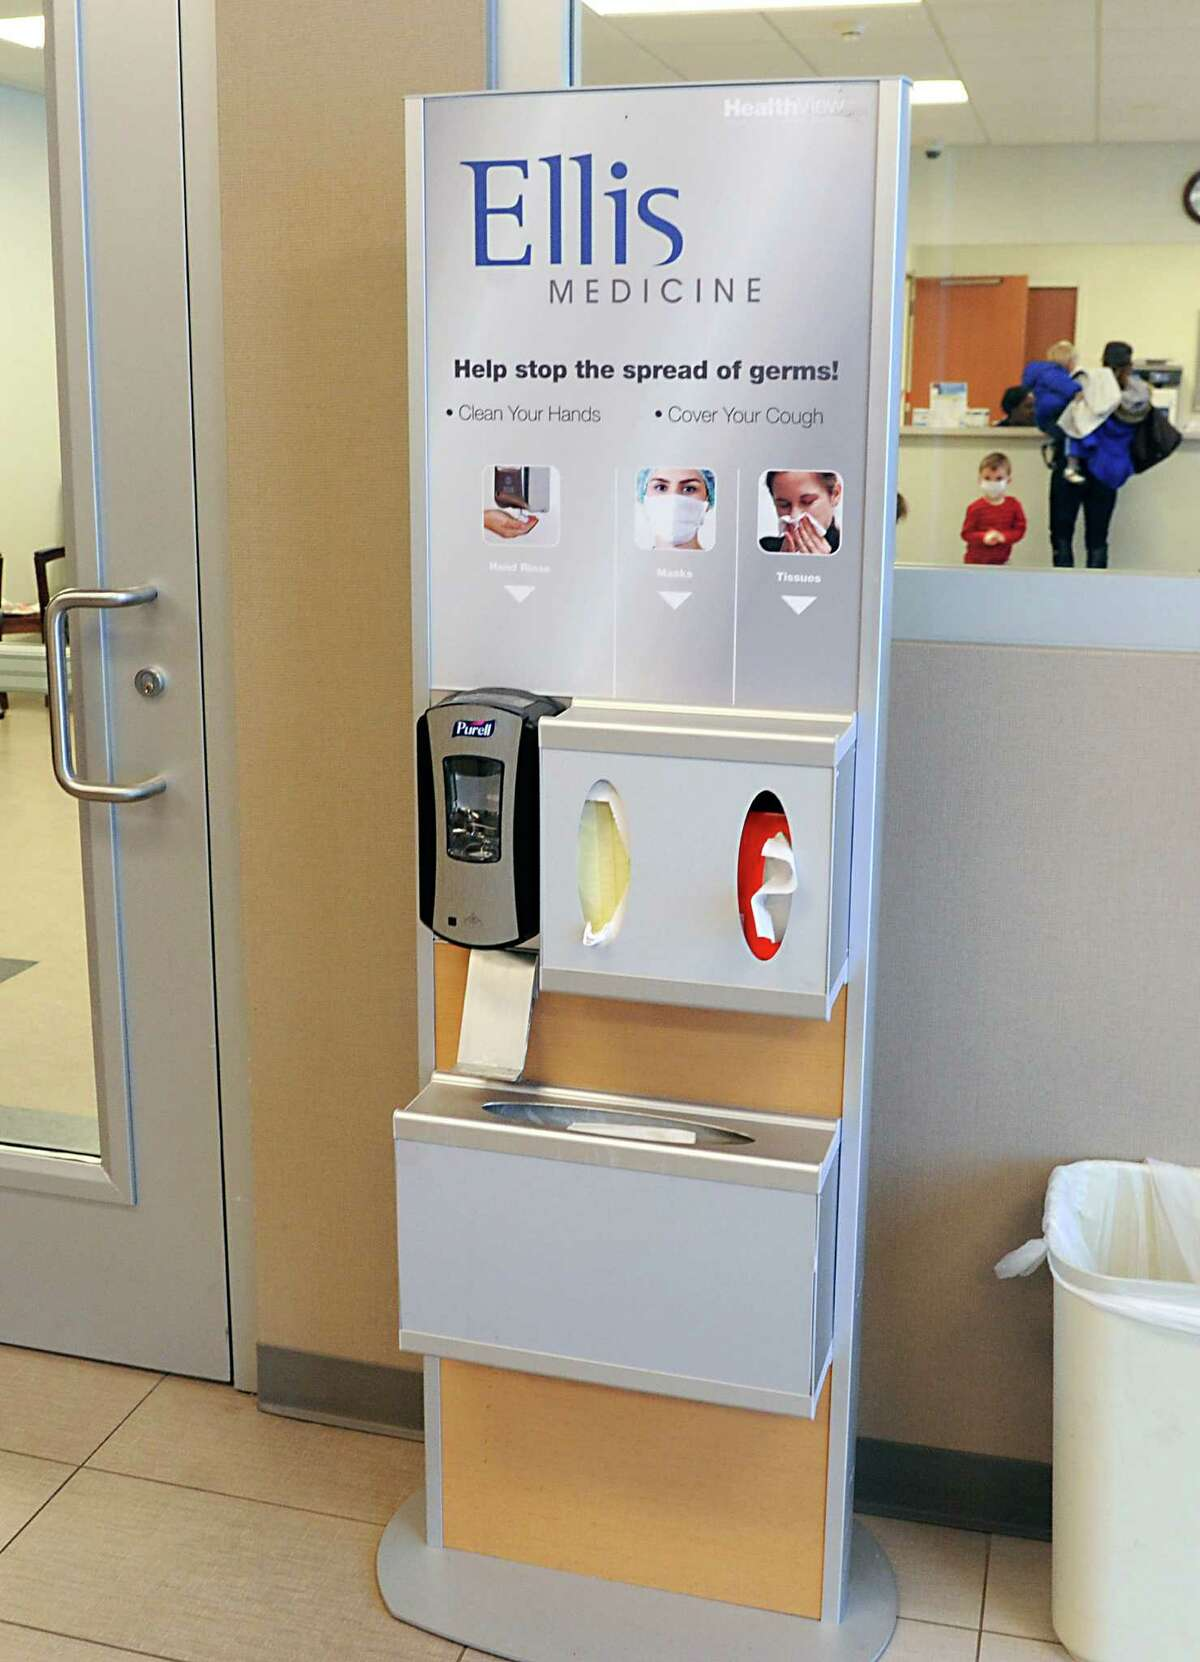 A kiosk which dispenses hand sanitizer, masks and tissue is seen in the lobby of Ellis Medicine on Tuesday, Dec. 16, 2014 in Clifton Park, N.Y. (Lori Van Buren / Times Union)